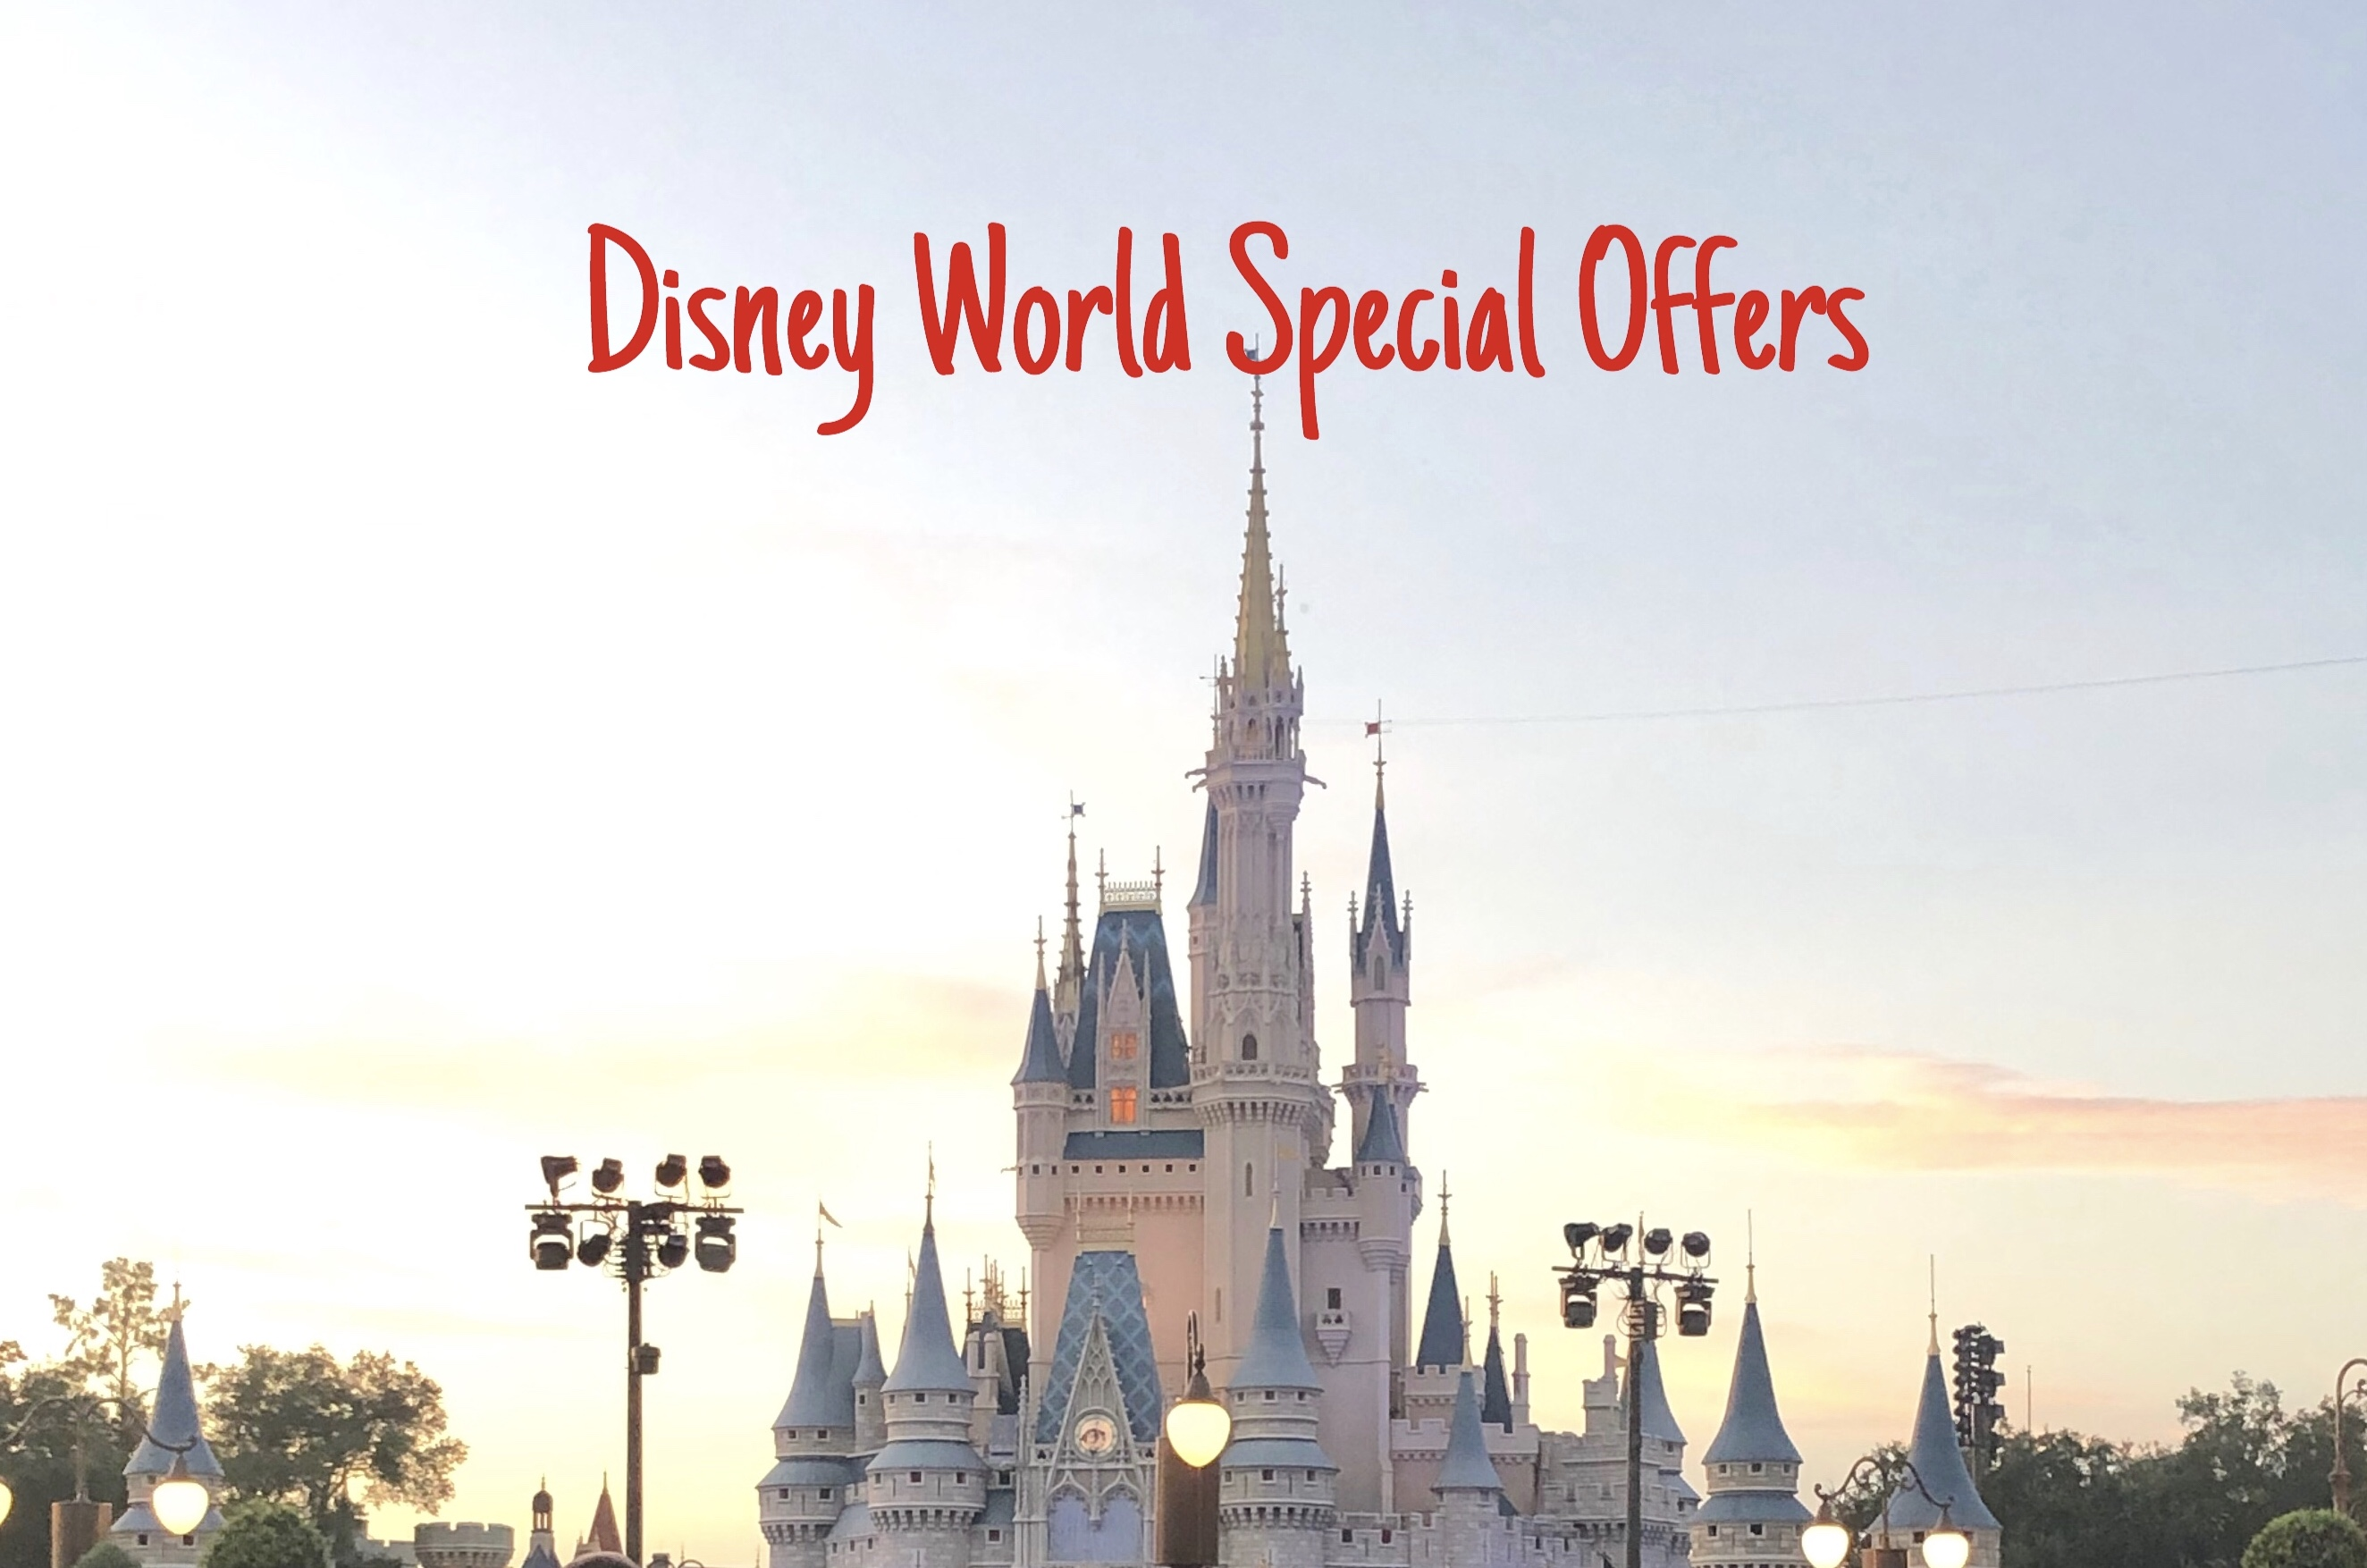 Discounts Released For Early 2020 at Walt Disney World